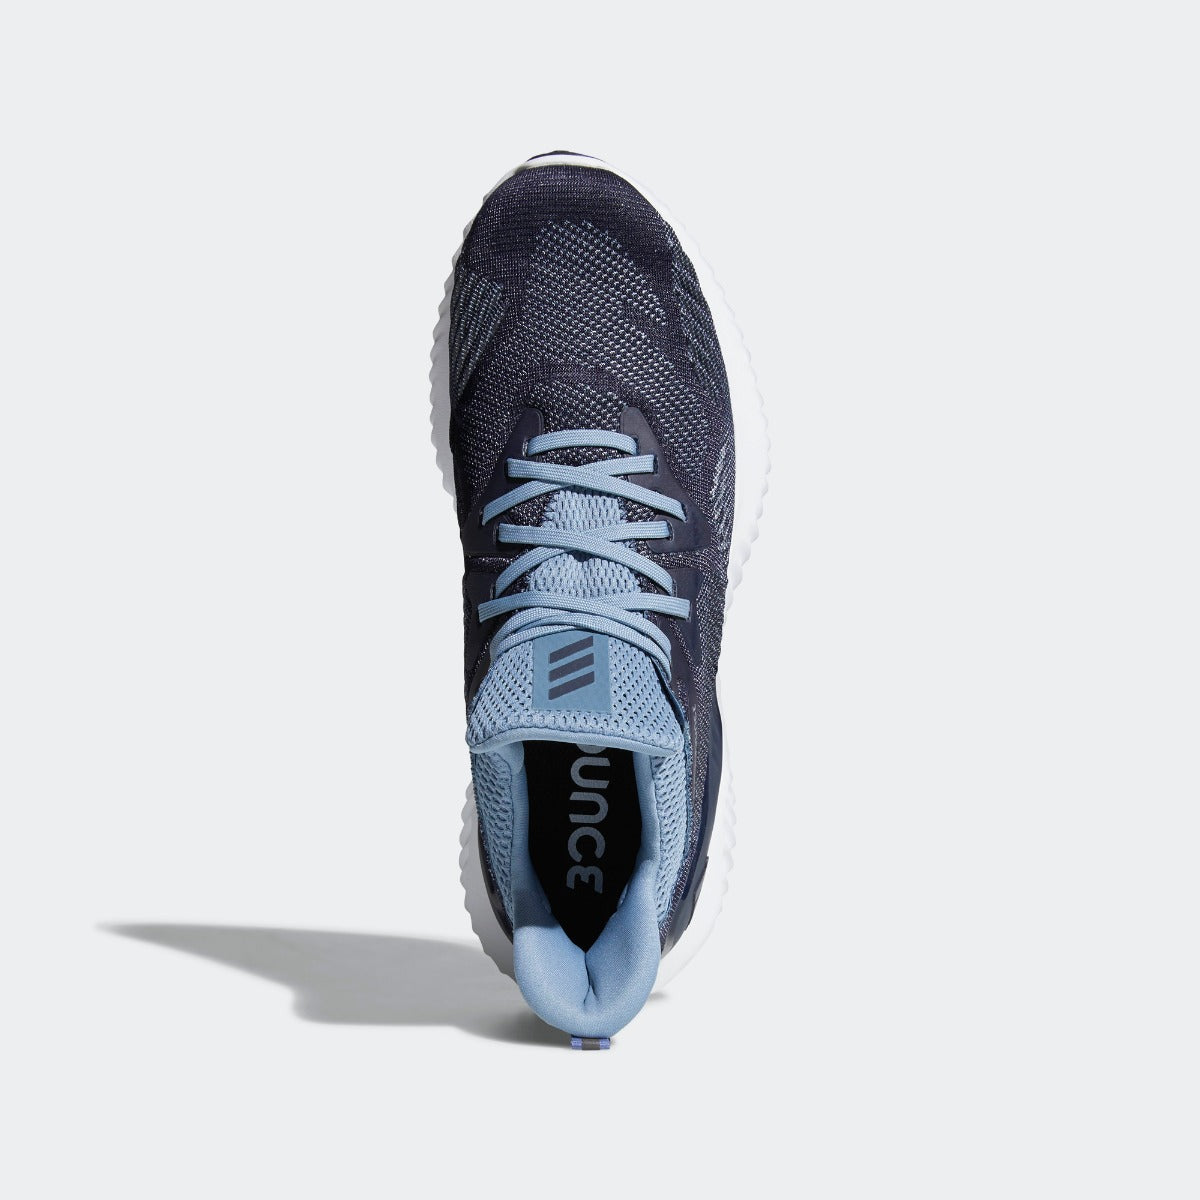 adidas Alphabounce Beyond Shoes Navy